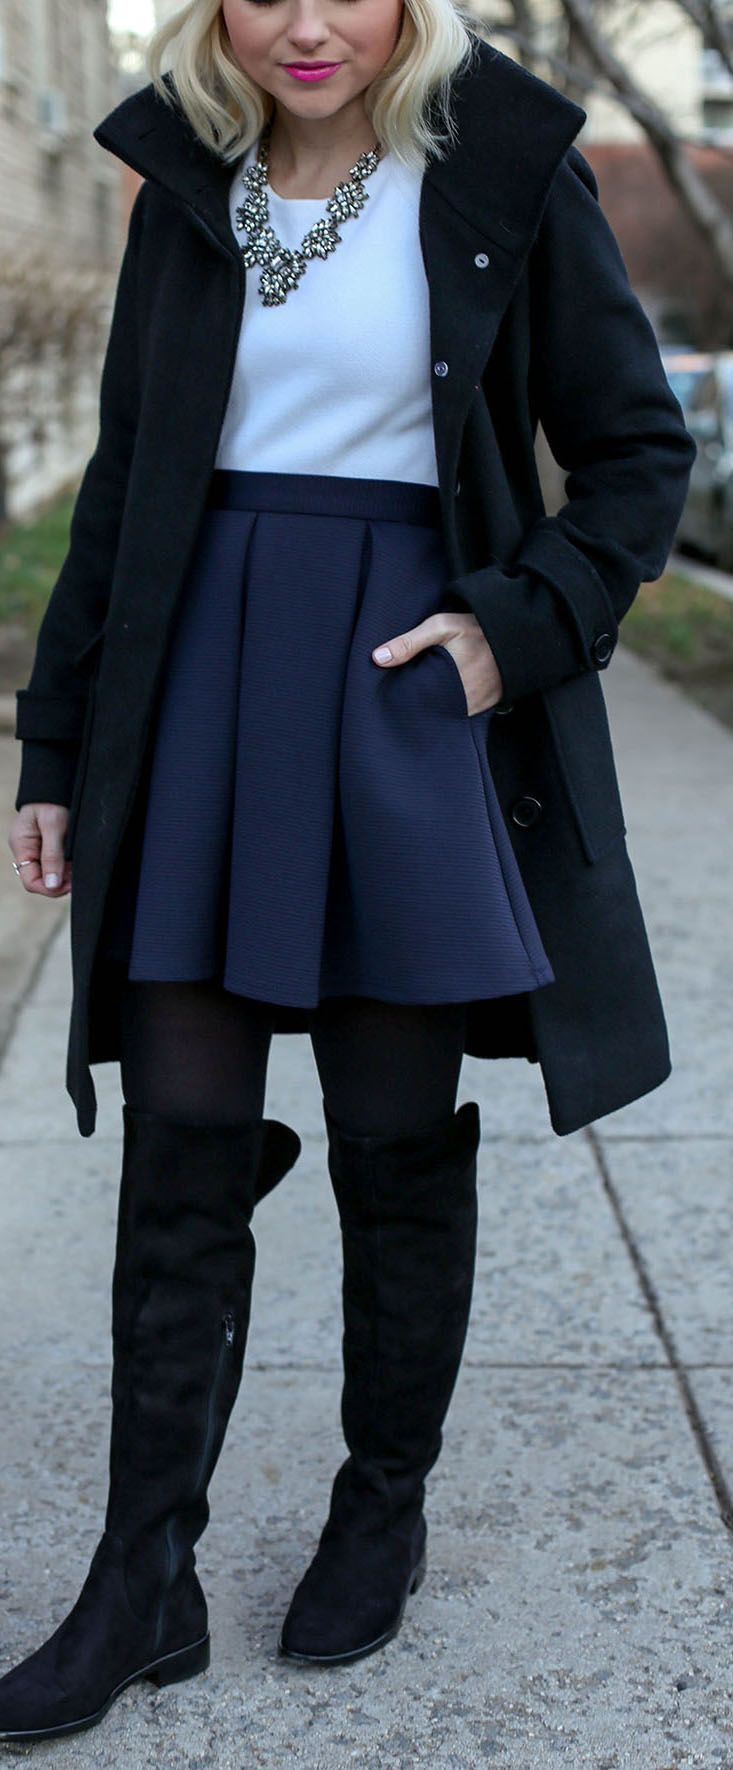 0231de46f715 How to style Over The Knee boots when you're petite - Hot pInk Beanie -  Poor Little It Girl